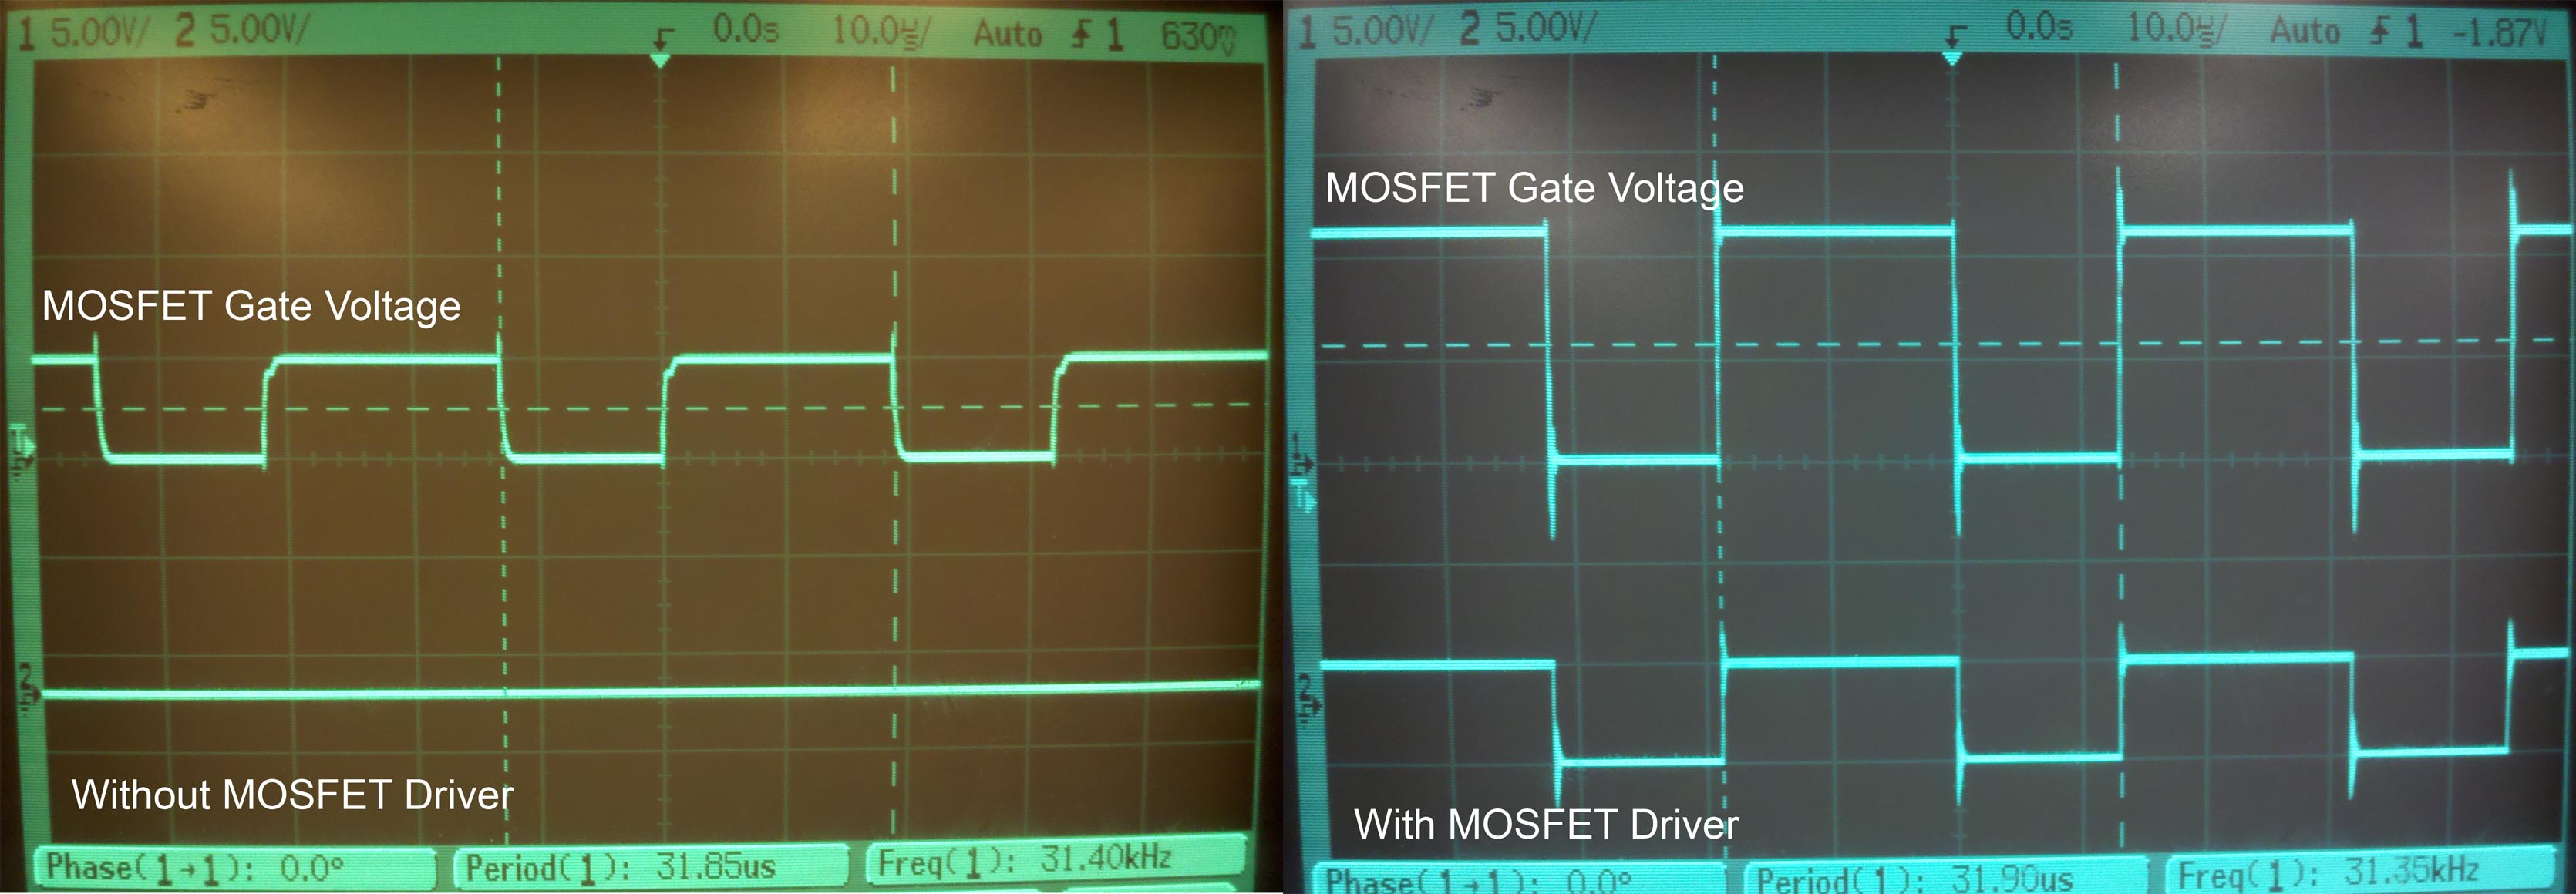 A Beginners Guide To The Mosfet 500w Power Inverter From 12v 110v 220v Circuit Diagram Without